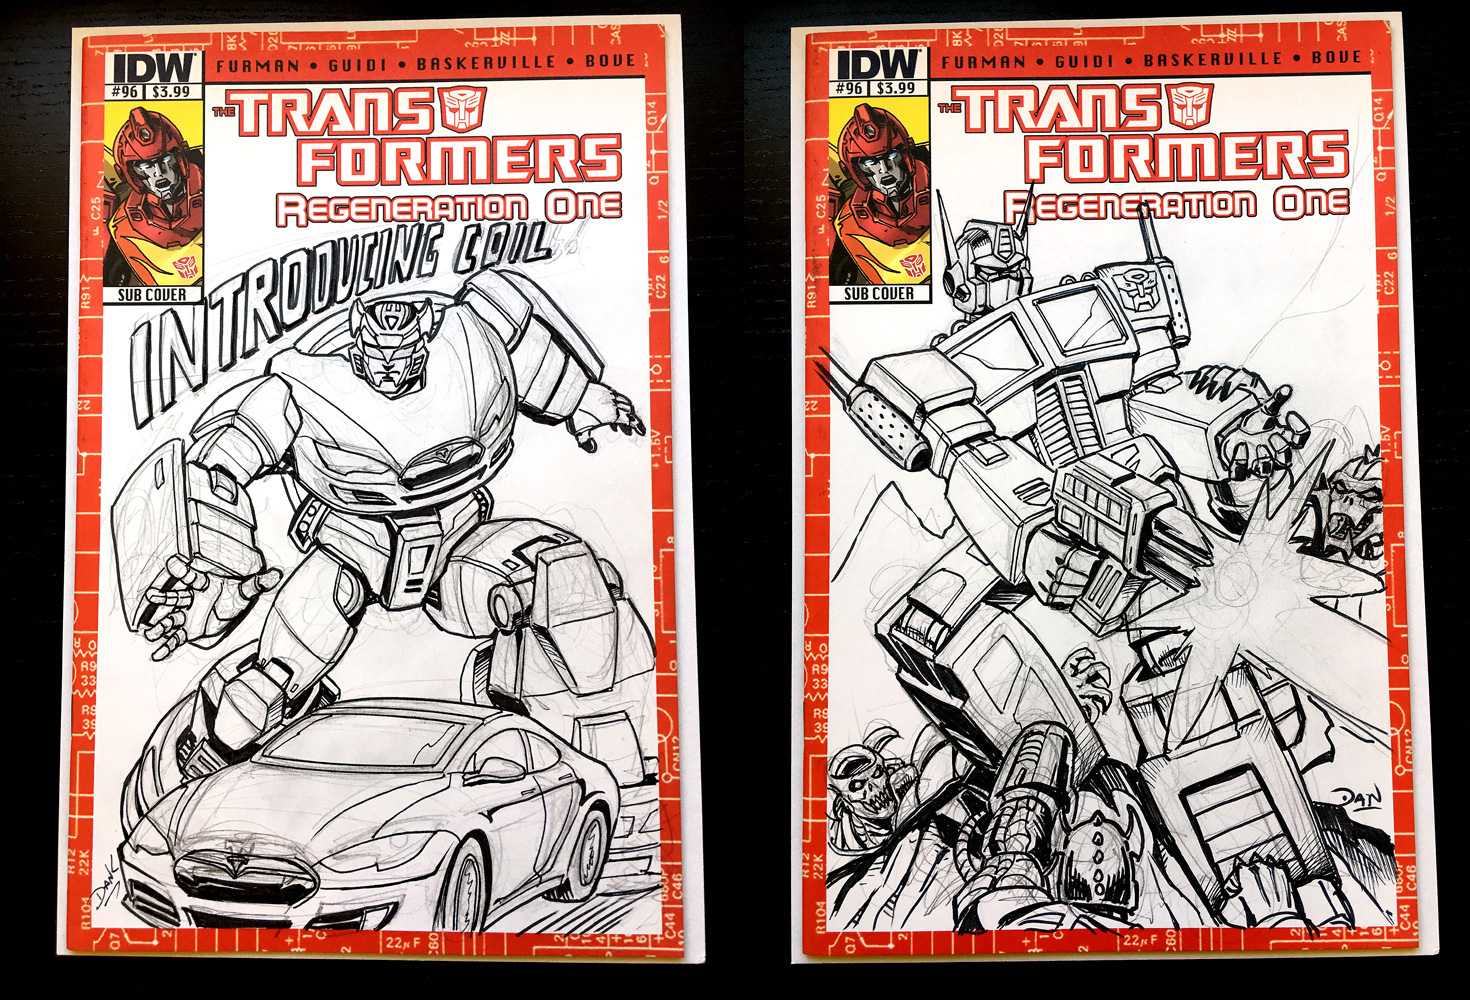 A Tale Of Two Sketch Covers